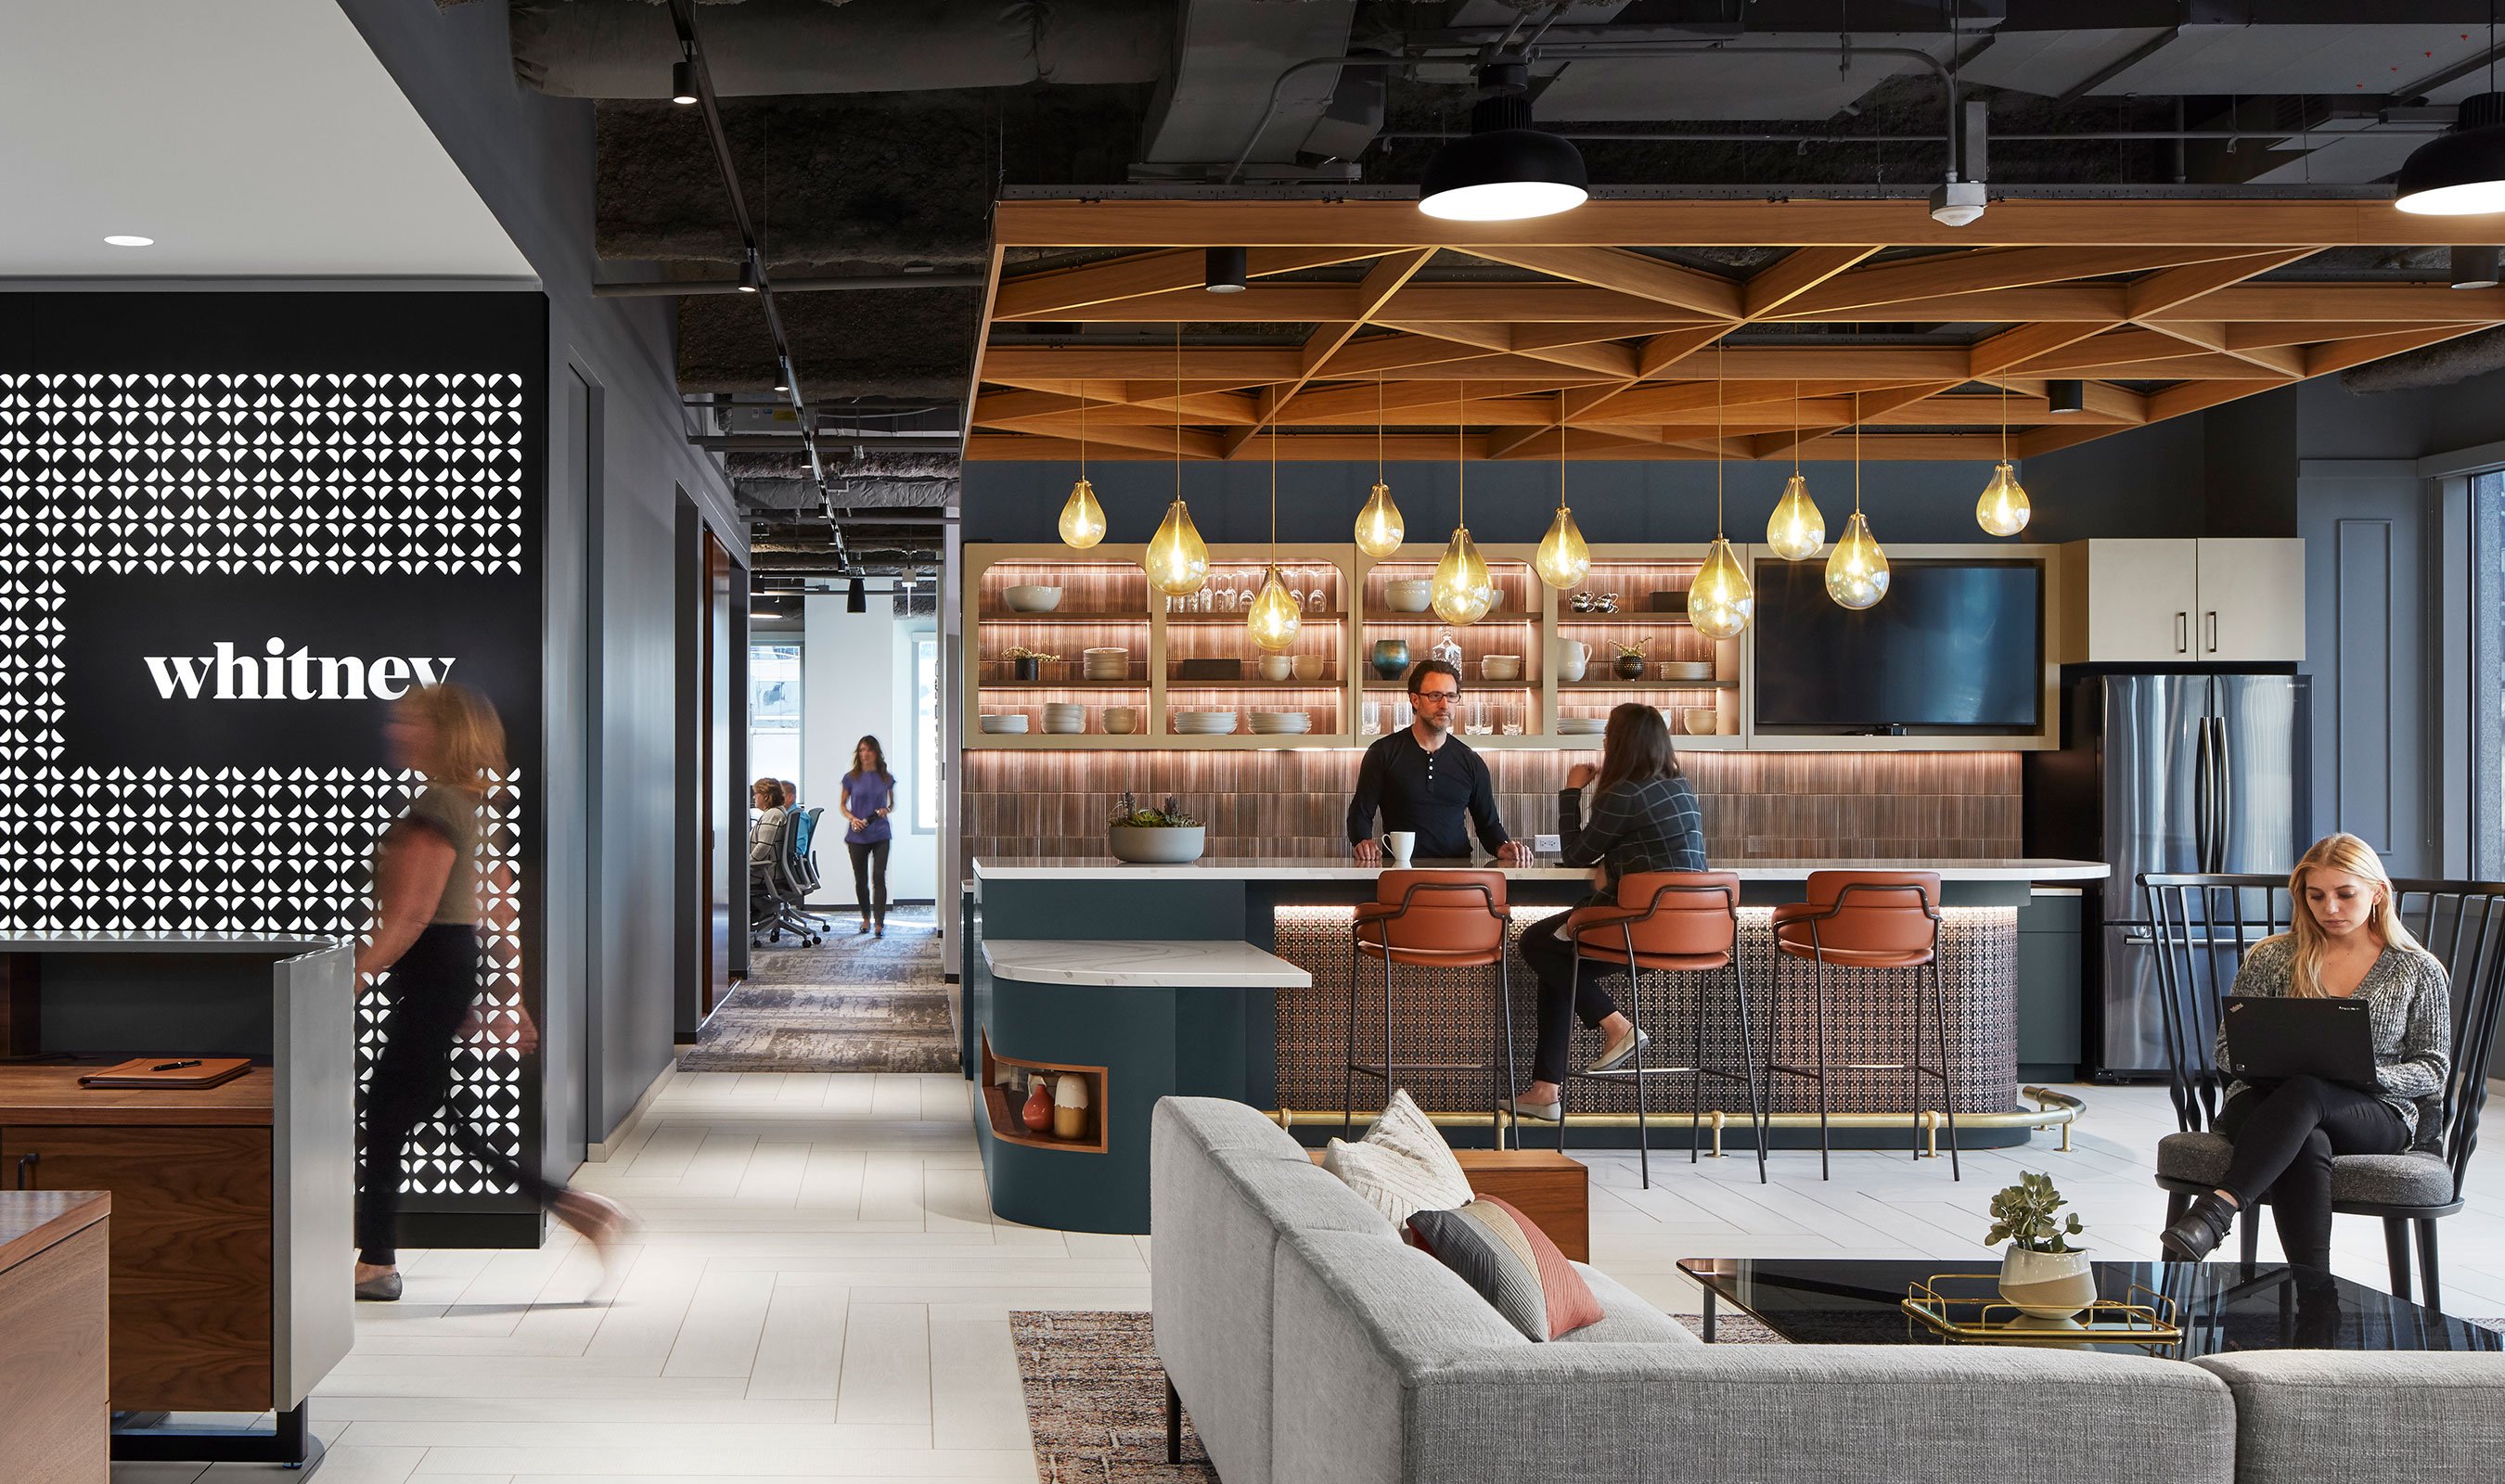 The Whitney Architects Head Quarters in Chicago uses Banker Wire's M33-5 in Antique Brass Decorative Plating as cladding for the work café space.